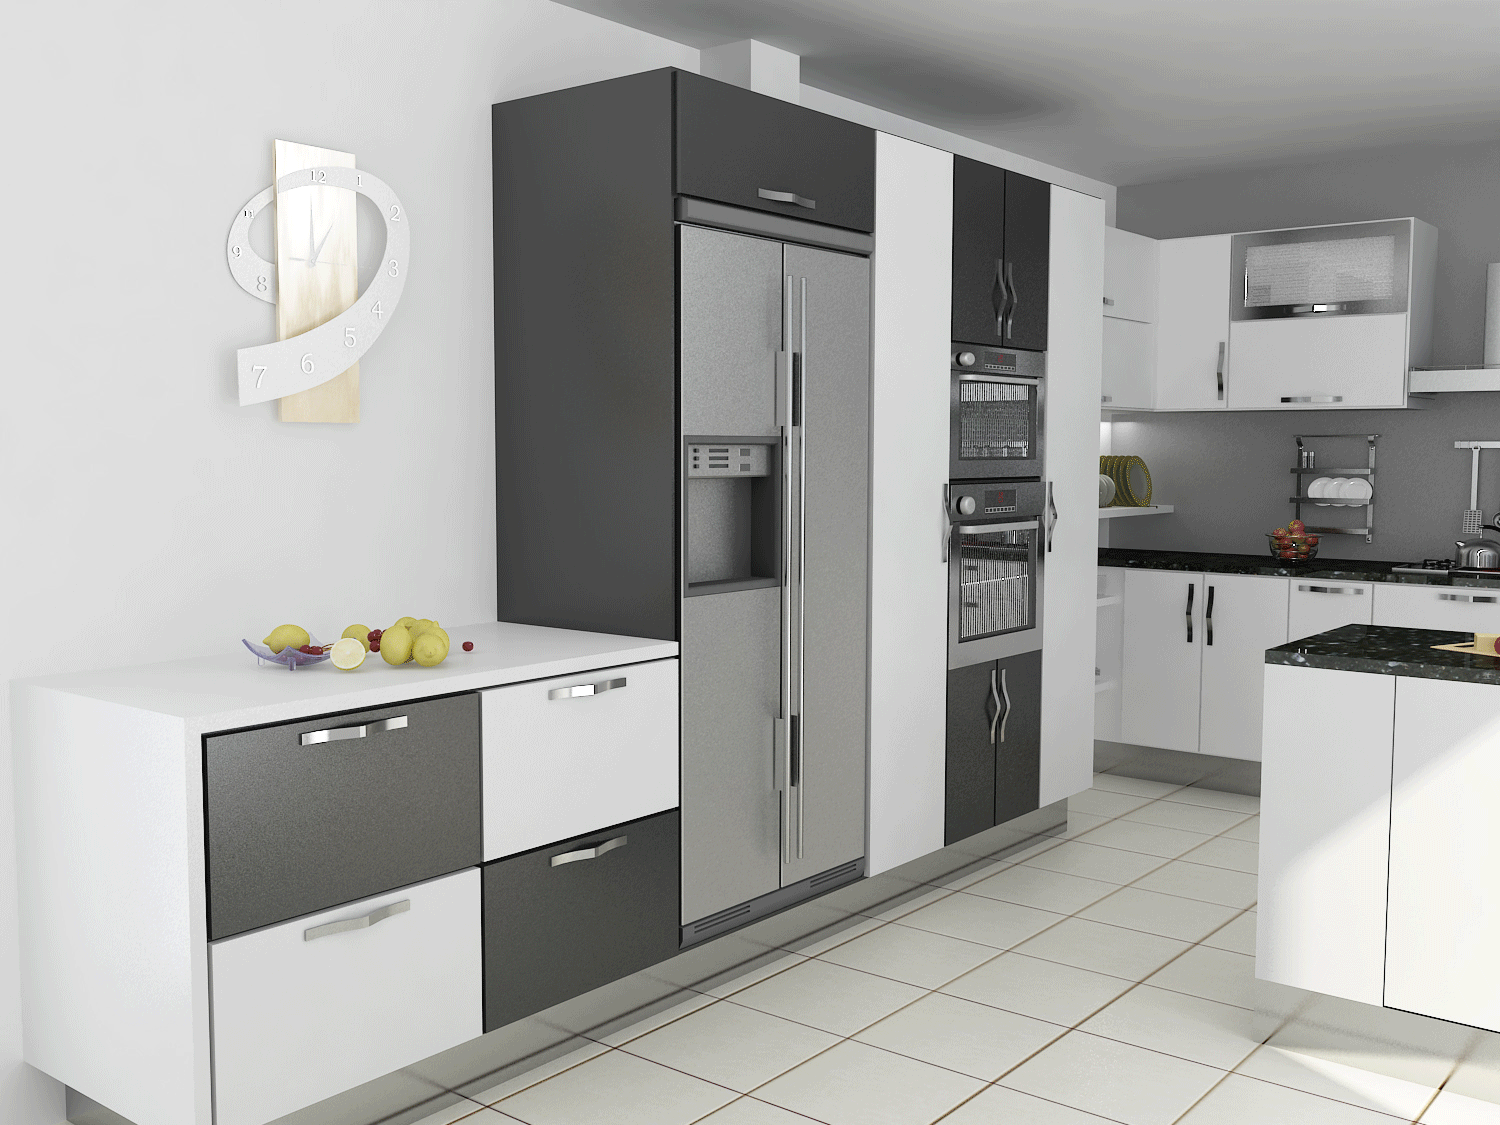 Cuisine 3d finest plan d u visite virtuelle d immobilier for Conception cuisine virtuelle